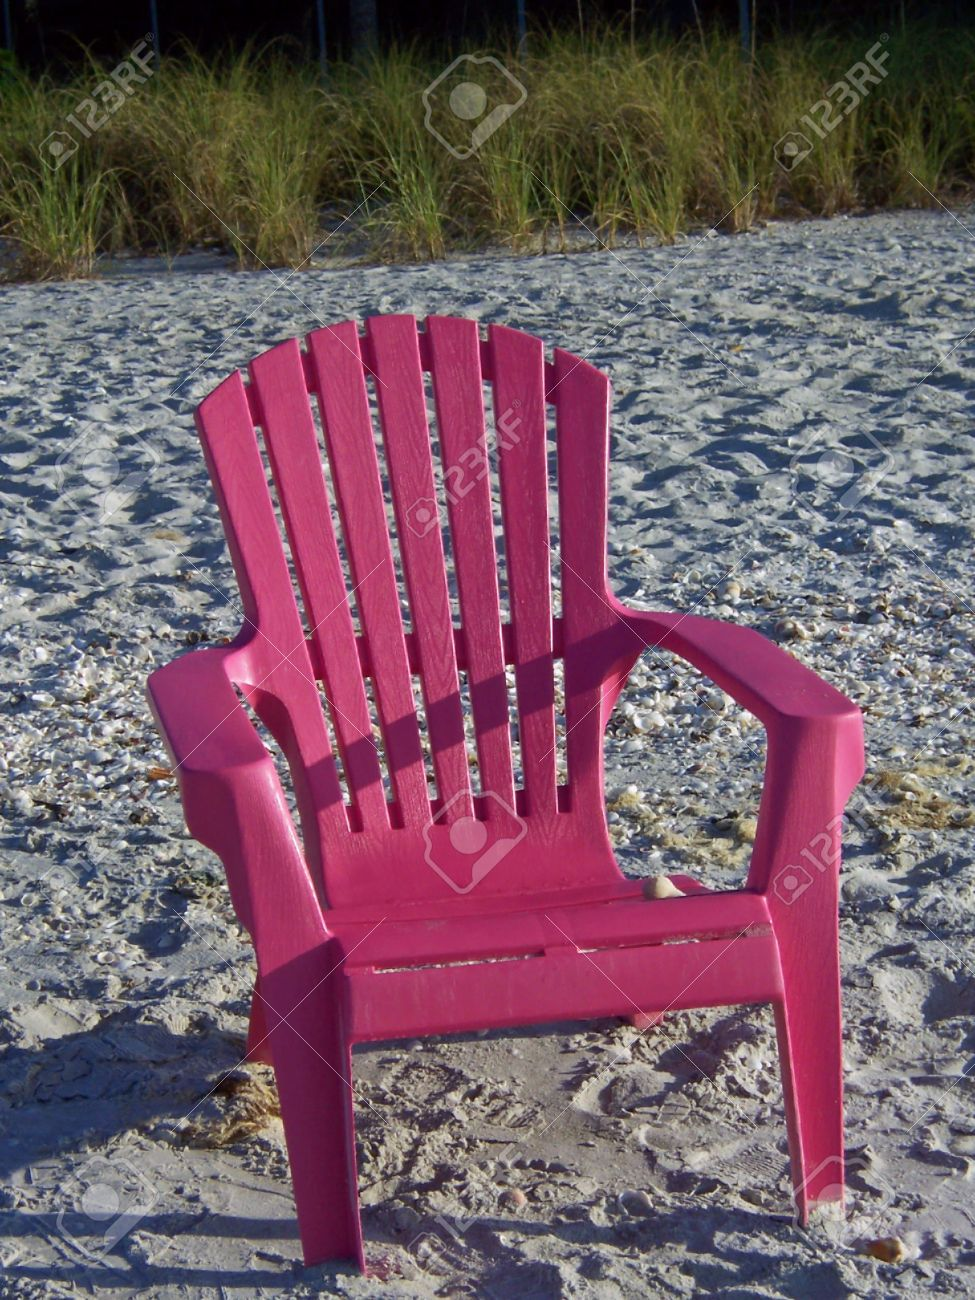 Colorful adirondack chairs - Bright Pink Colorful Adirondack Chair On Beach Stock Photo 2751521